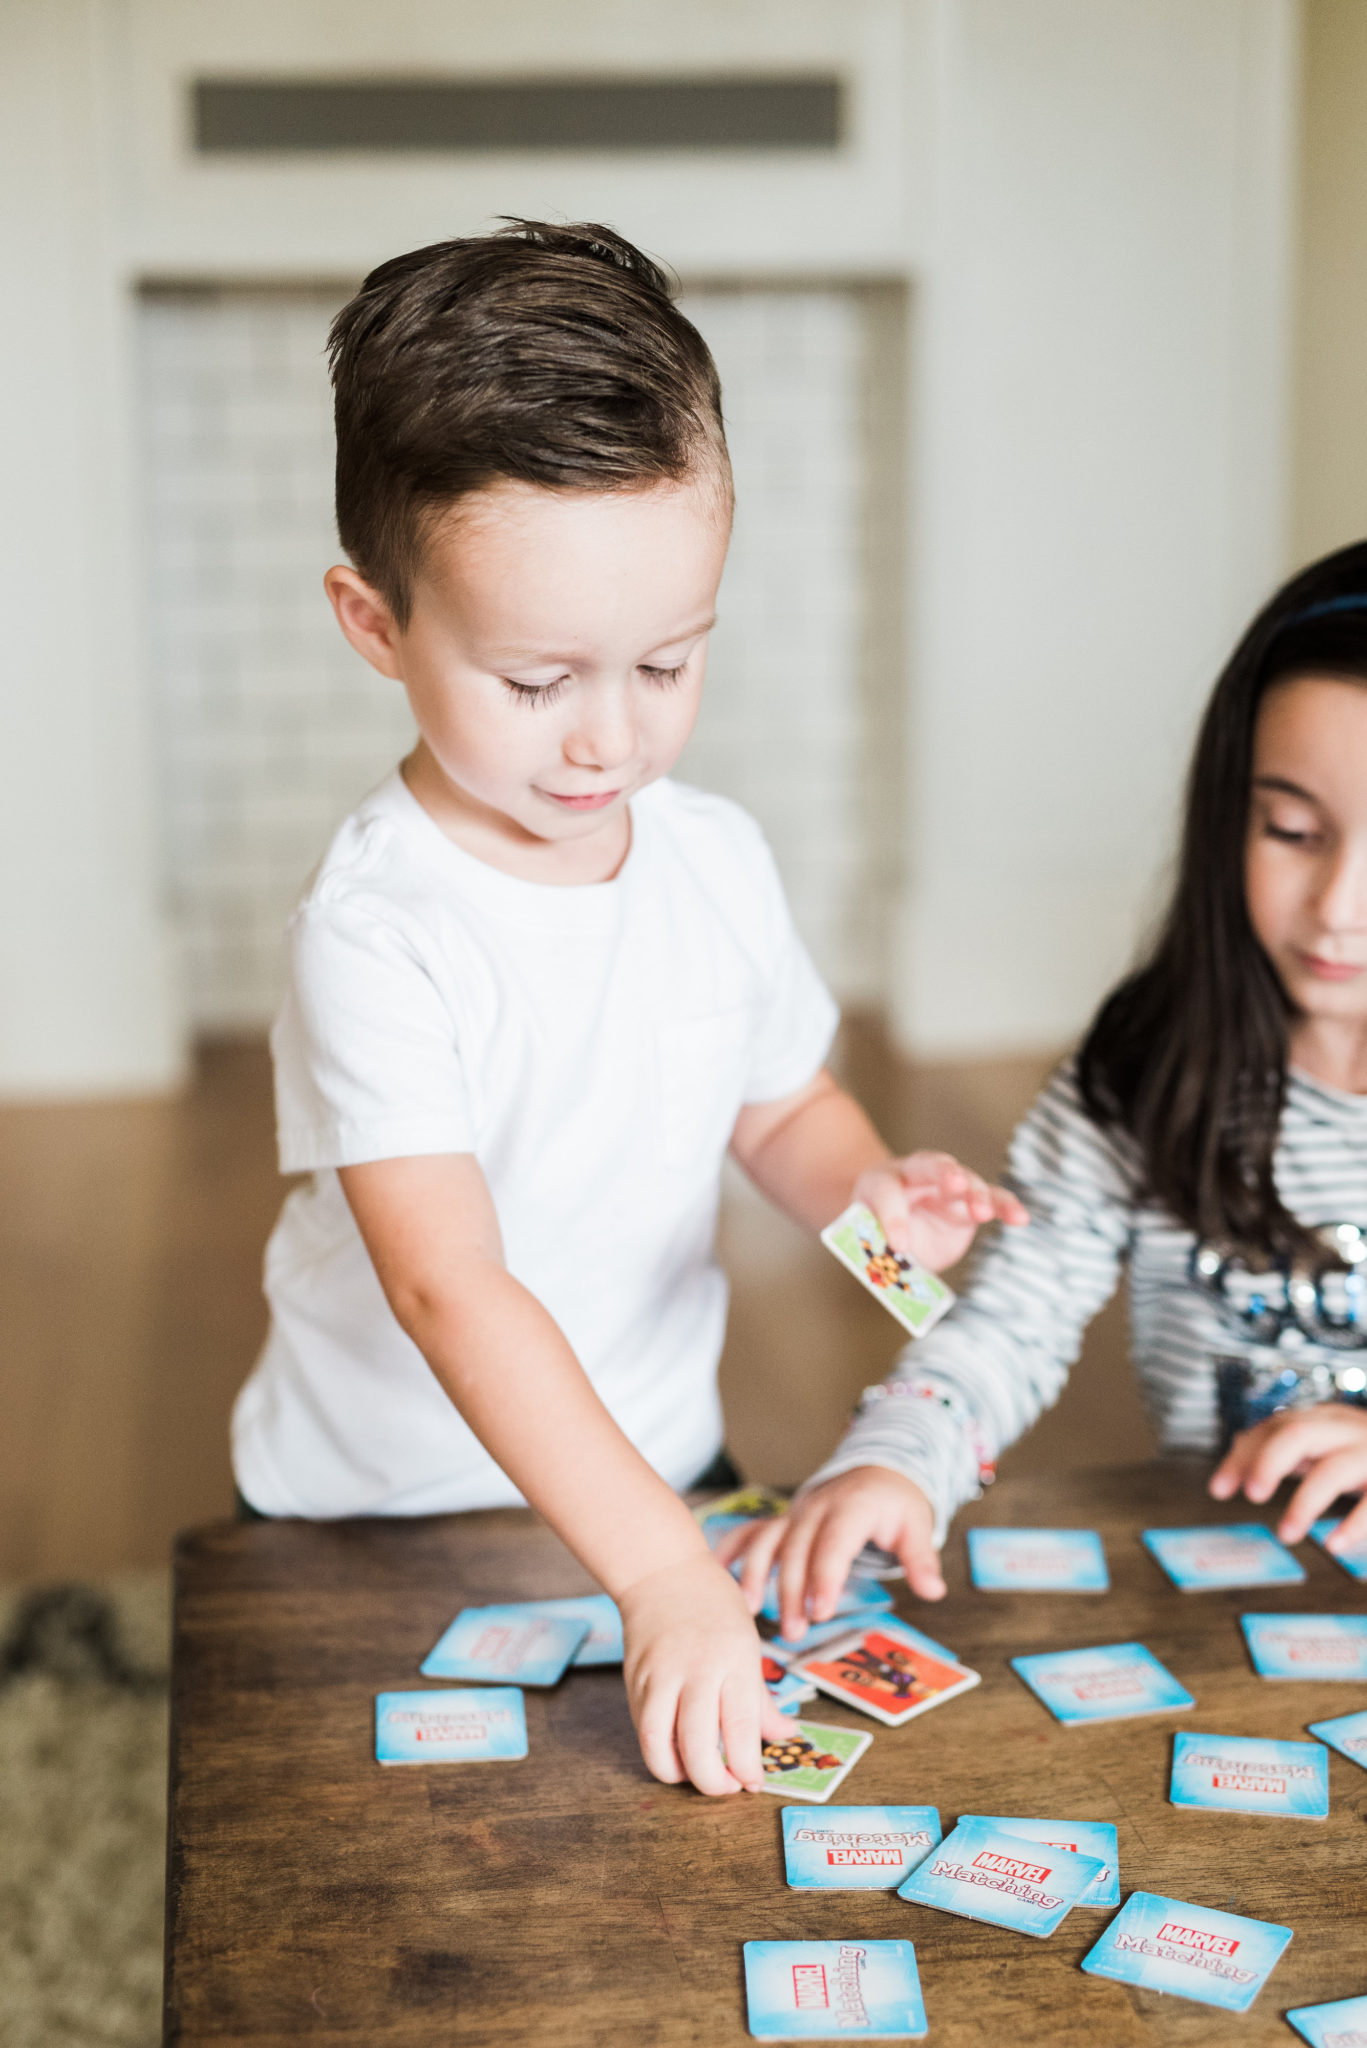 family board games, games for toddlers, games for ages 3 to 5 year olds, Tampa parenting blog mothers blog motherhood blog Florida travel blogger travel influencer healthy mom blogger spring hill florida lifestyle parenting blog best mom blog 2018